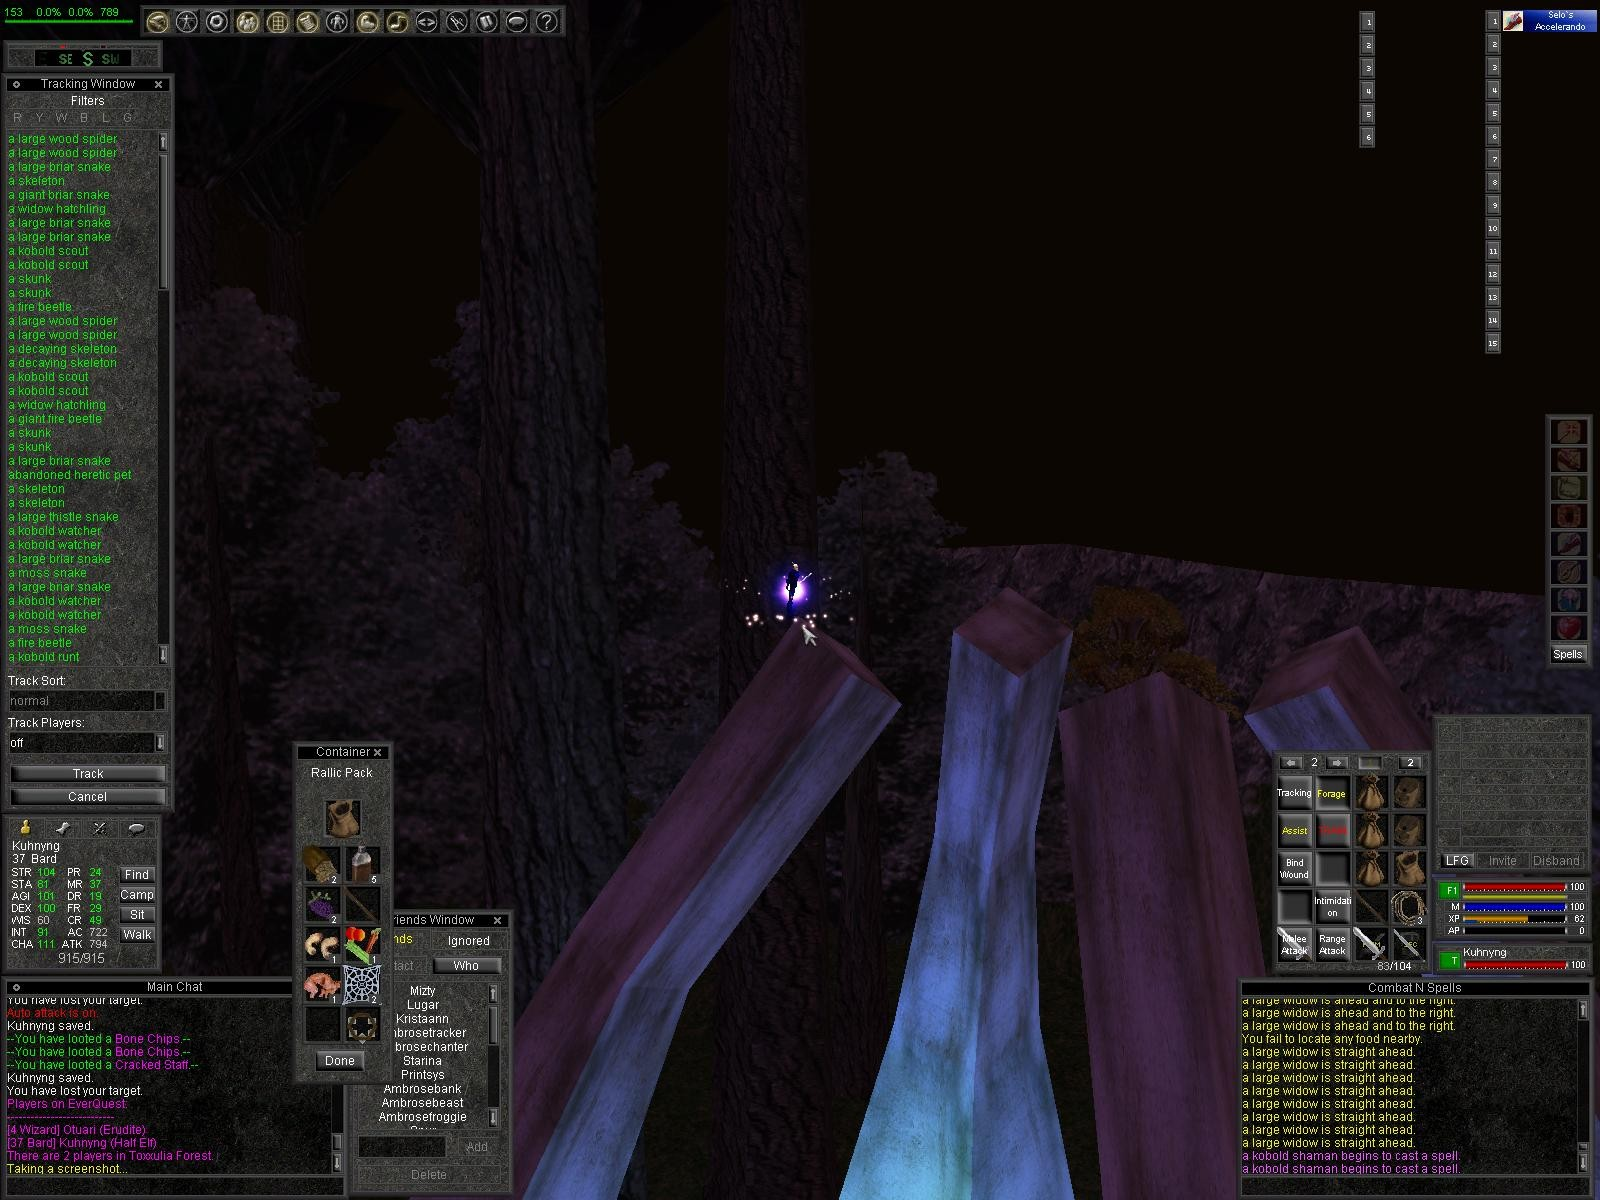 EverQuest - Sitting atop the Nexus Spires